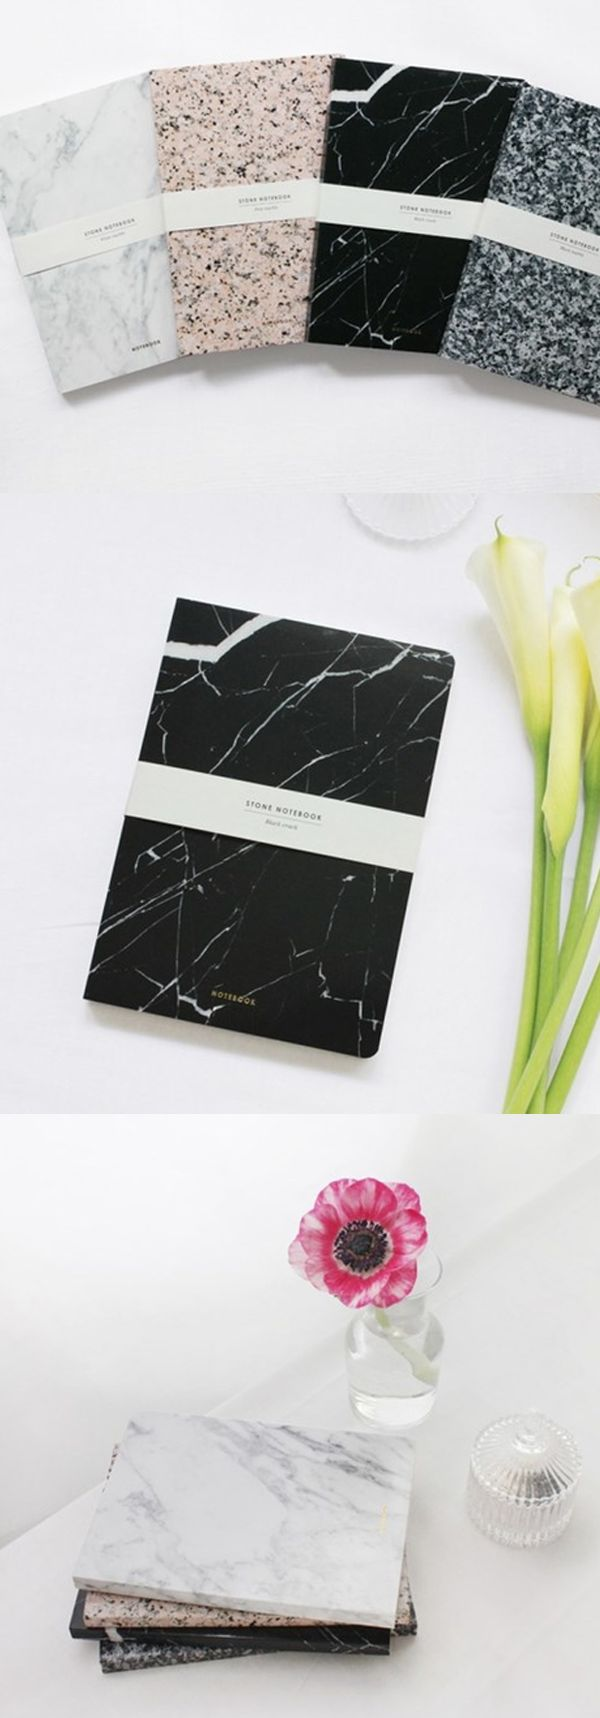 It looks really heavy!! But the Stone Notebook is actually a fantastic and useful notebook with a unique stone design for a cover!